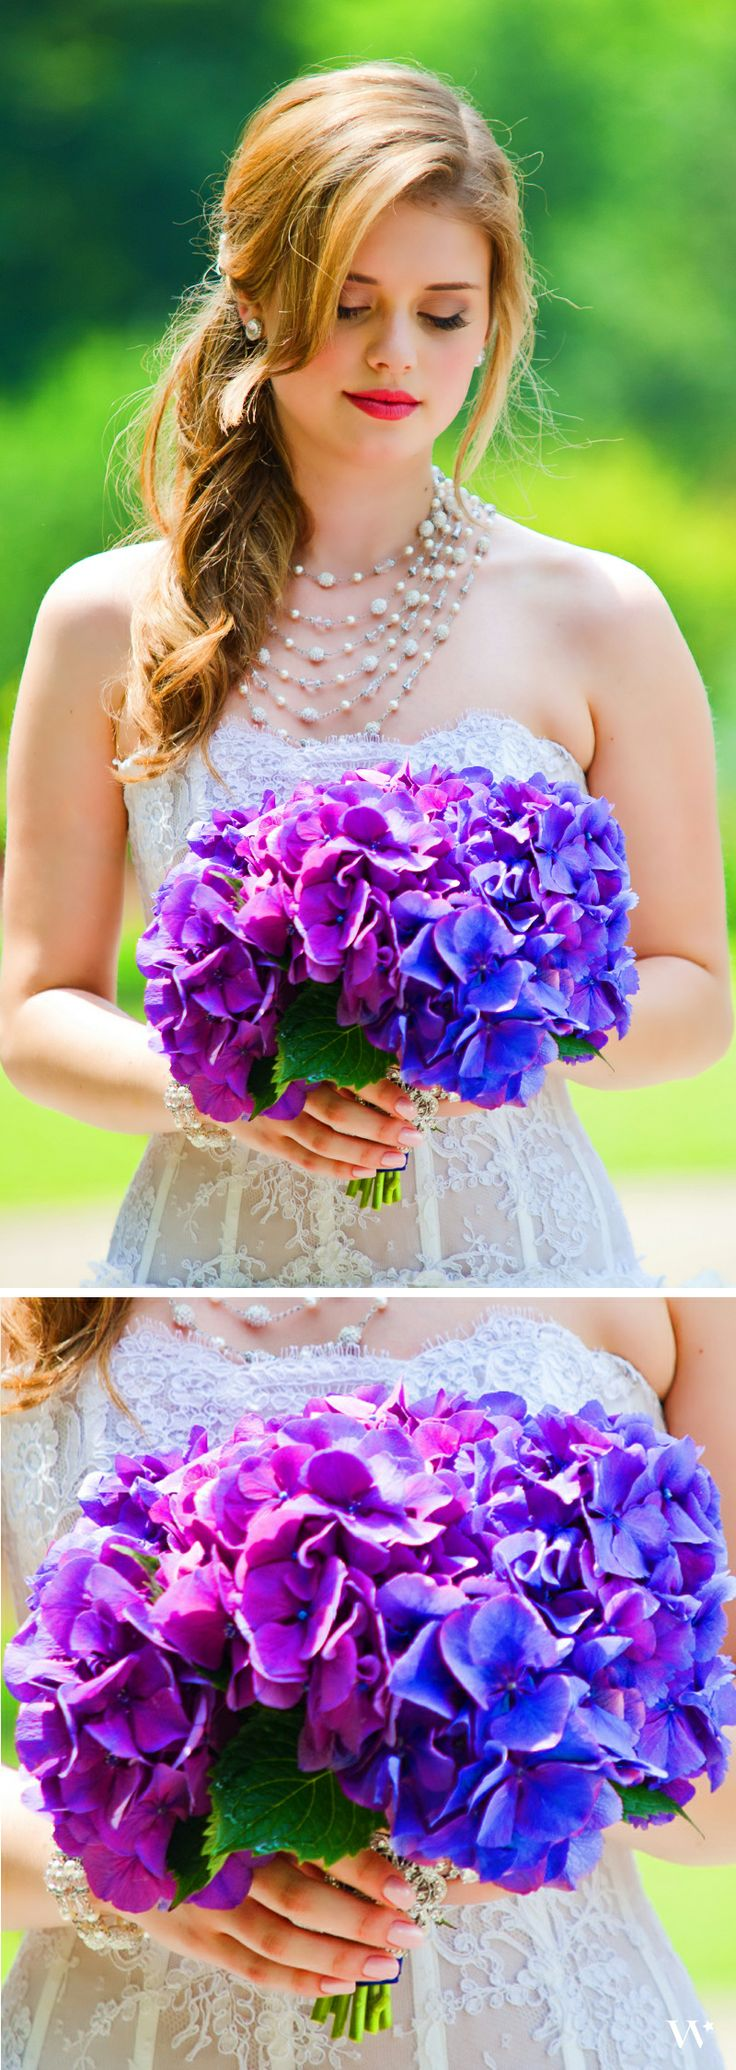 Simple purple floral bouquet - glam and natural! Get more great garden theme ideas for your wedding with the rest of this styled wedding shoot: http://issuu.com/weddingstar/docs/weddingstar-contemporary-garden-lookbook